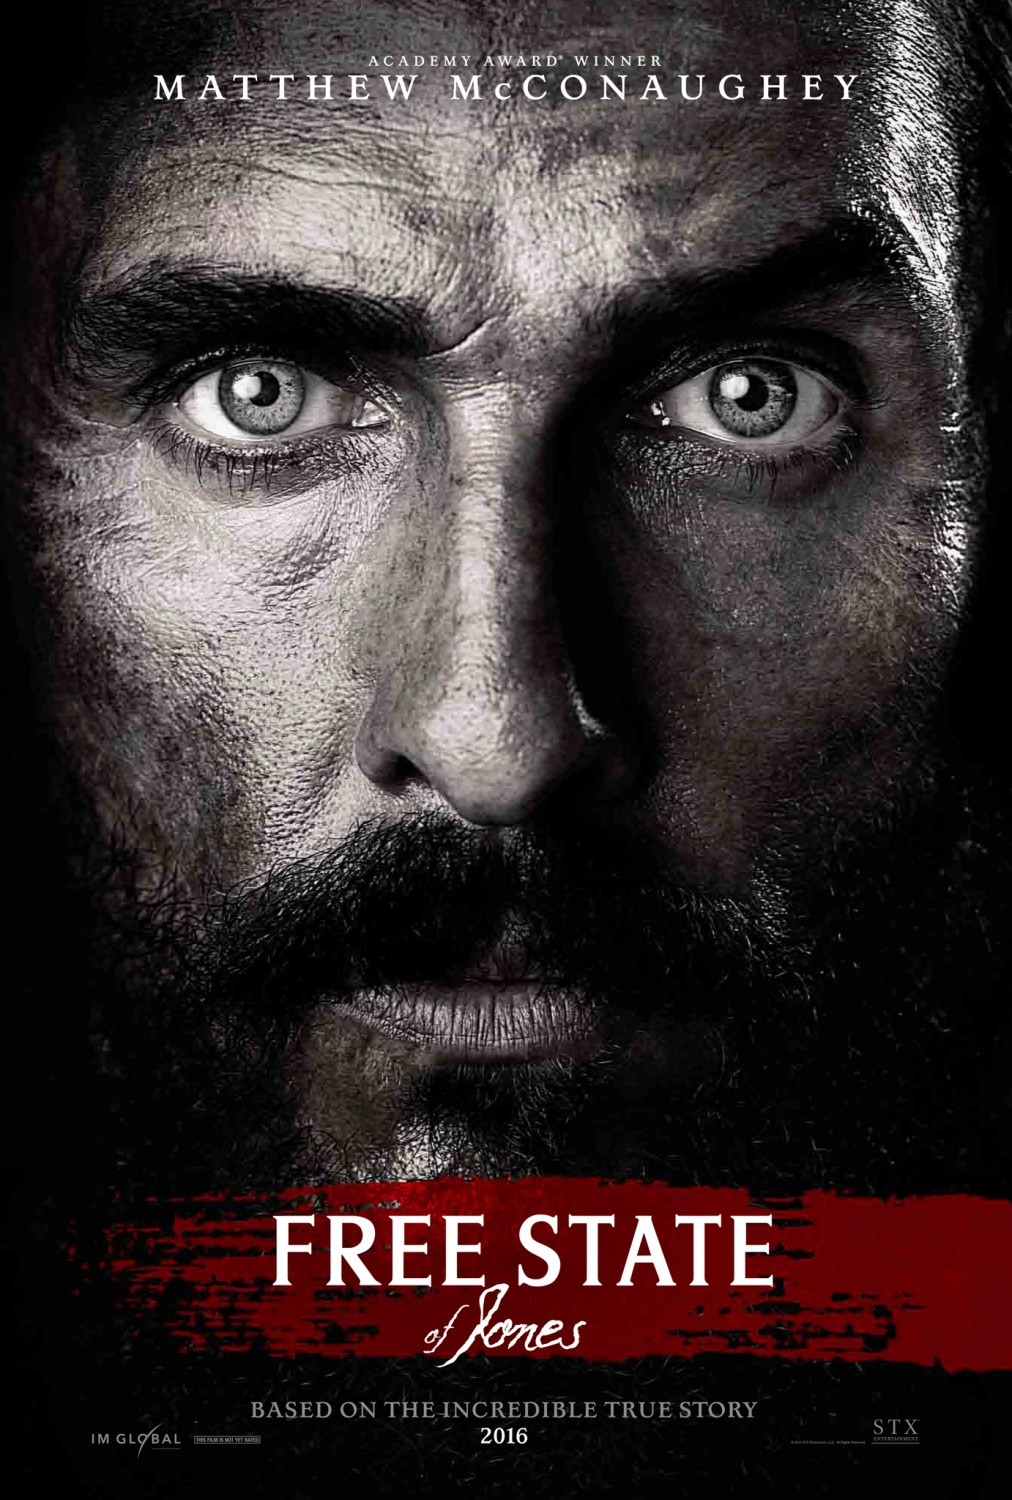 https://i2.wp.com/www.blackfilm.com/read/wp-content/uploads/2016/01/Free-State-of-Jones-poster.jpg